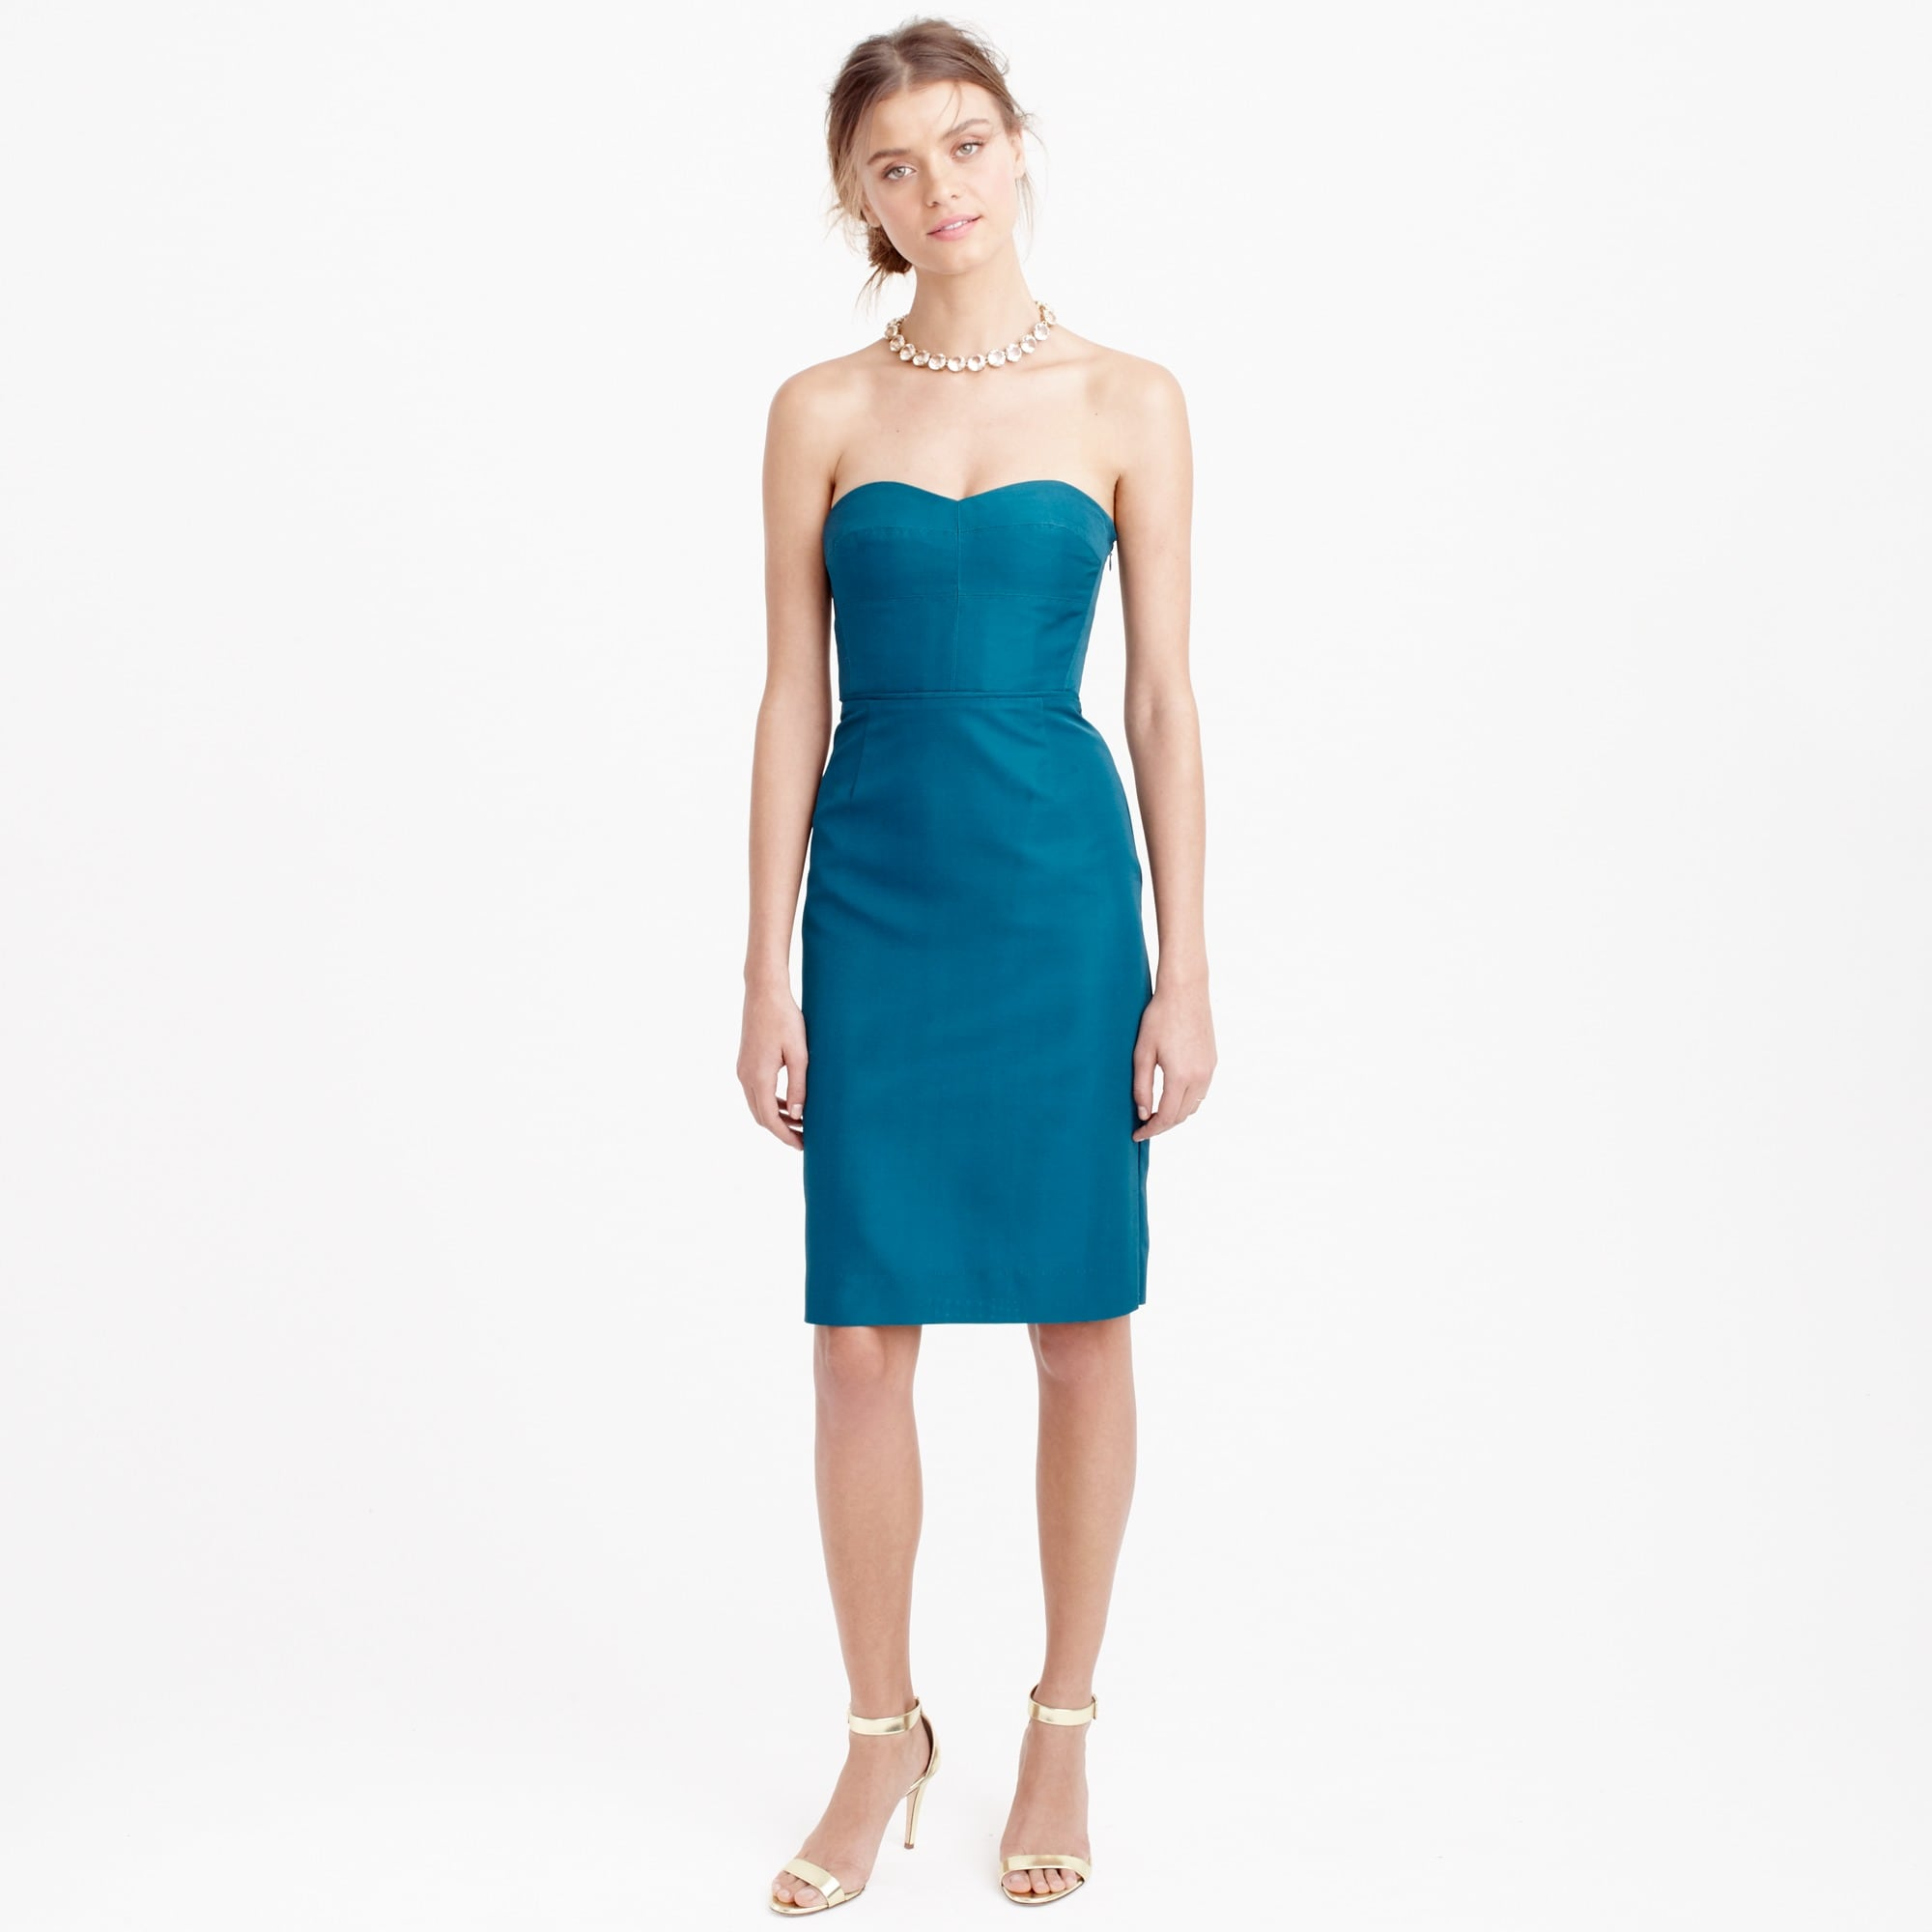 Image 1 for Rory strapless dress in classic faille